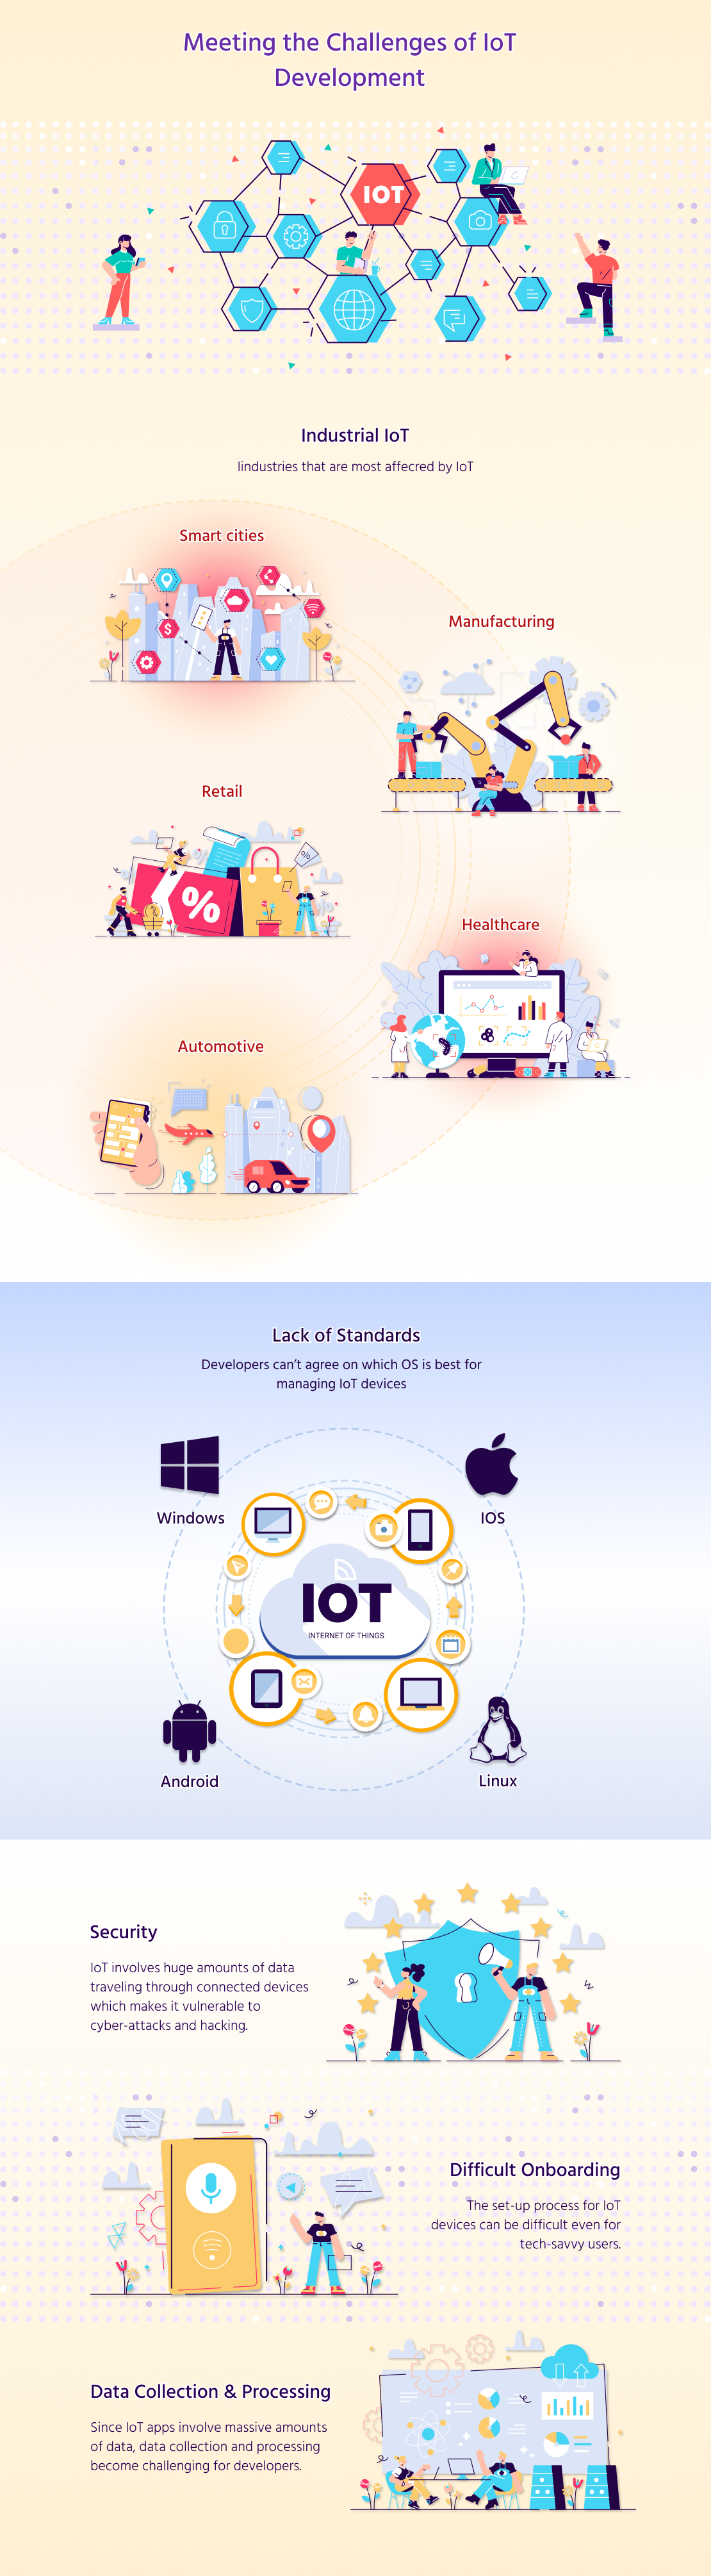 developing iot devices